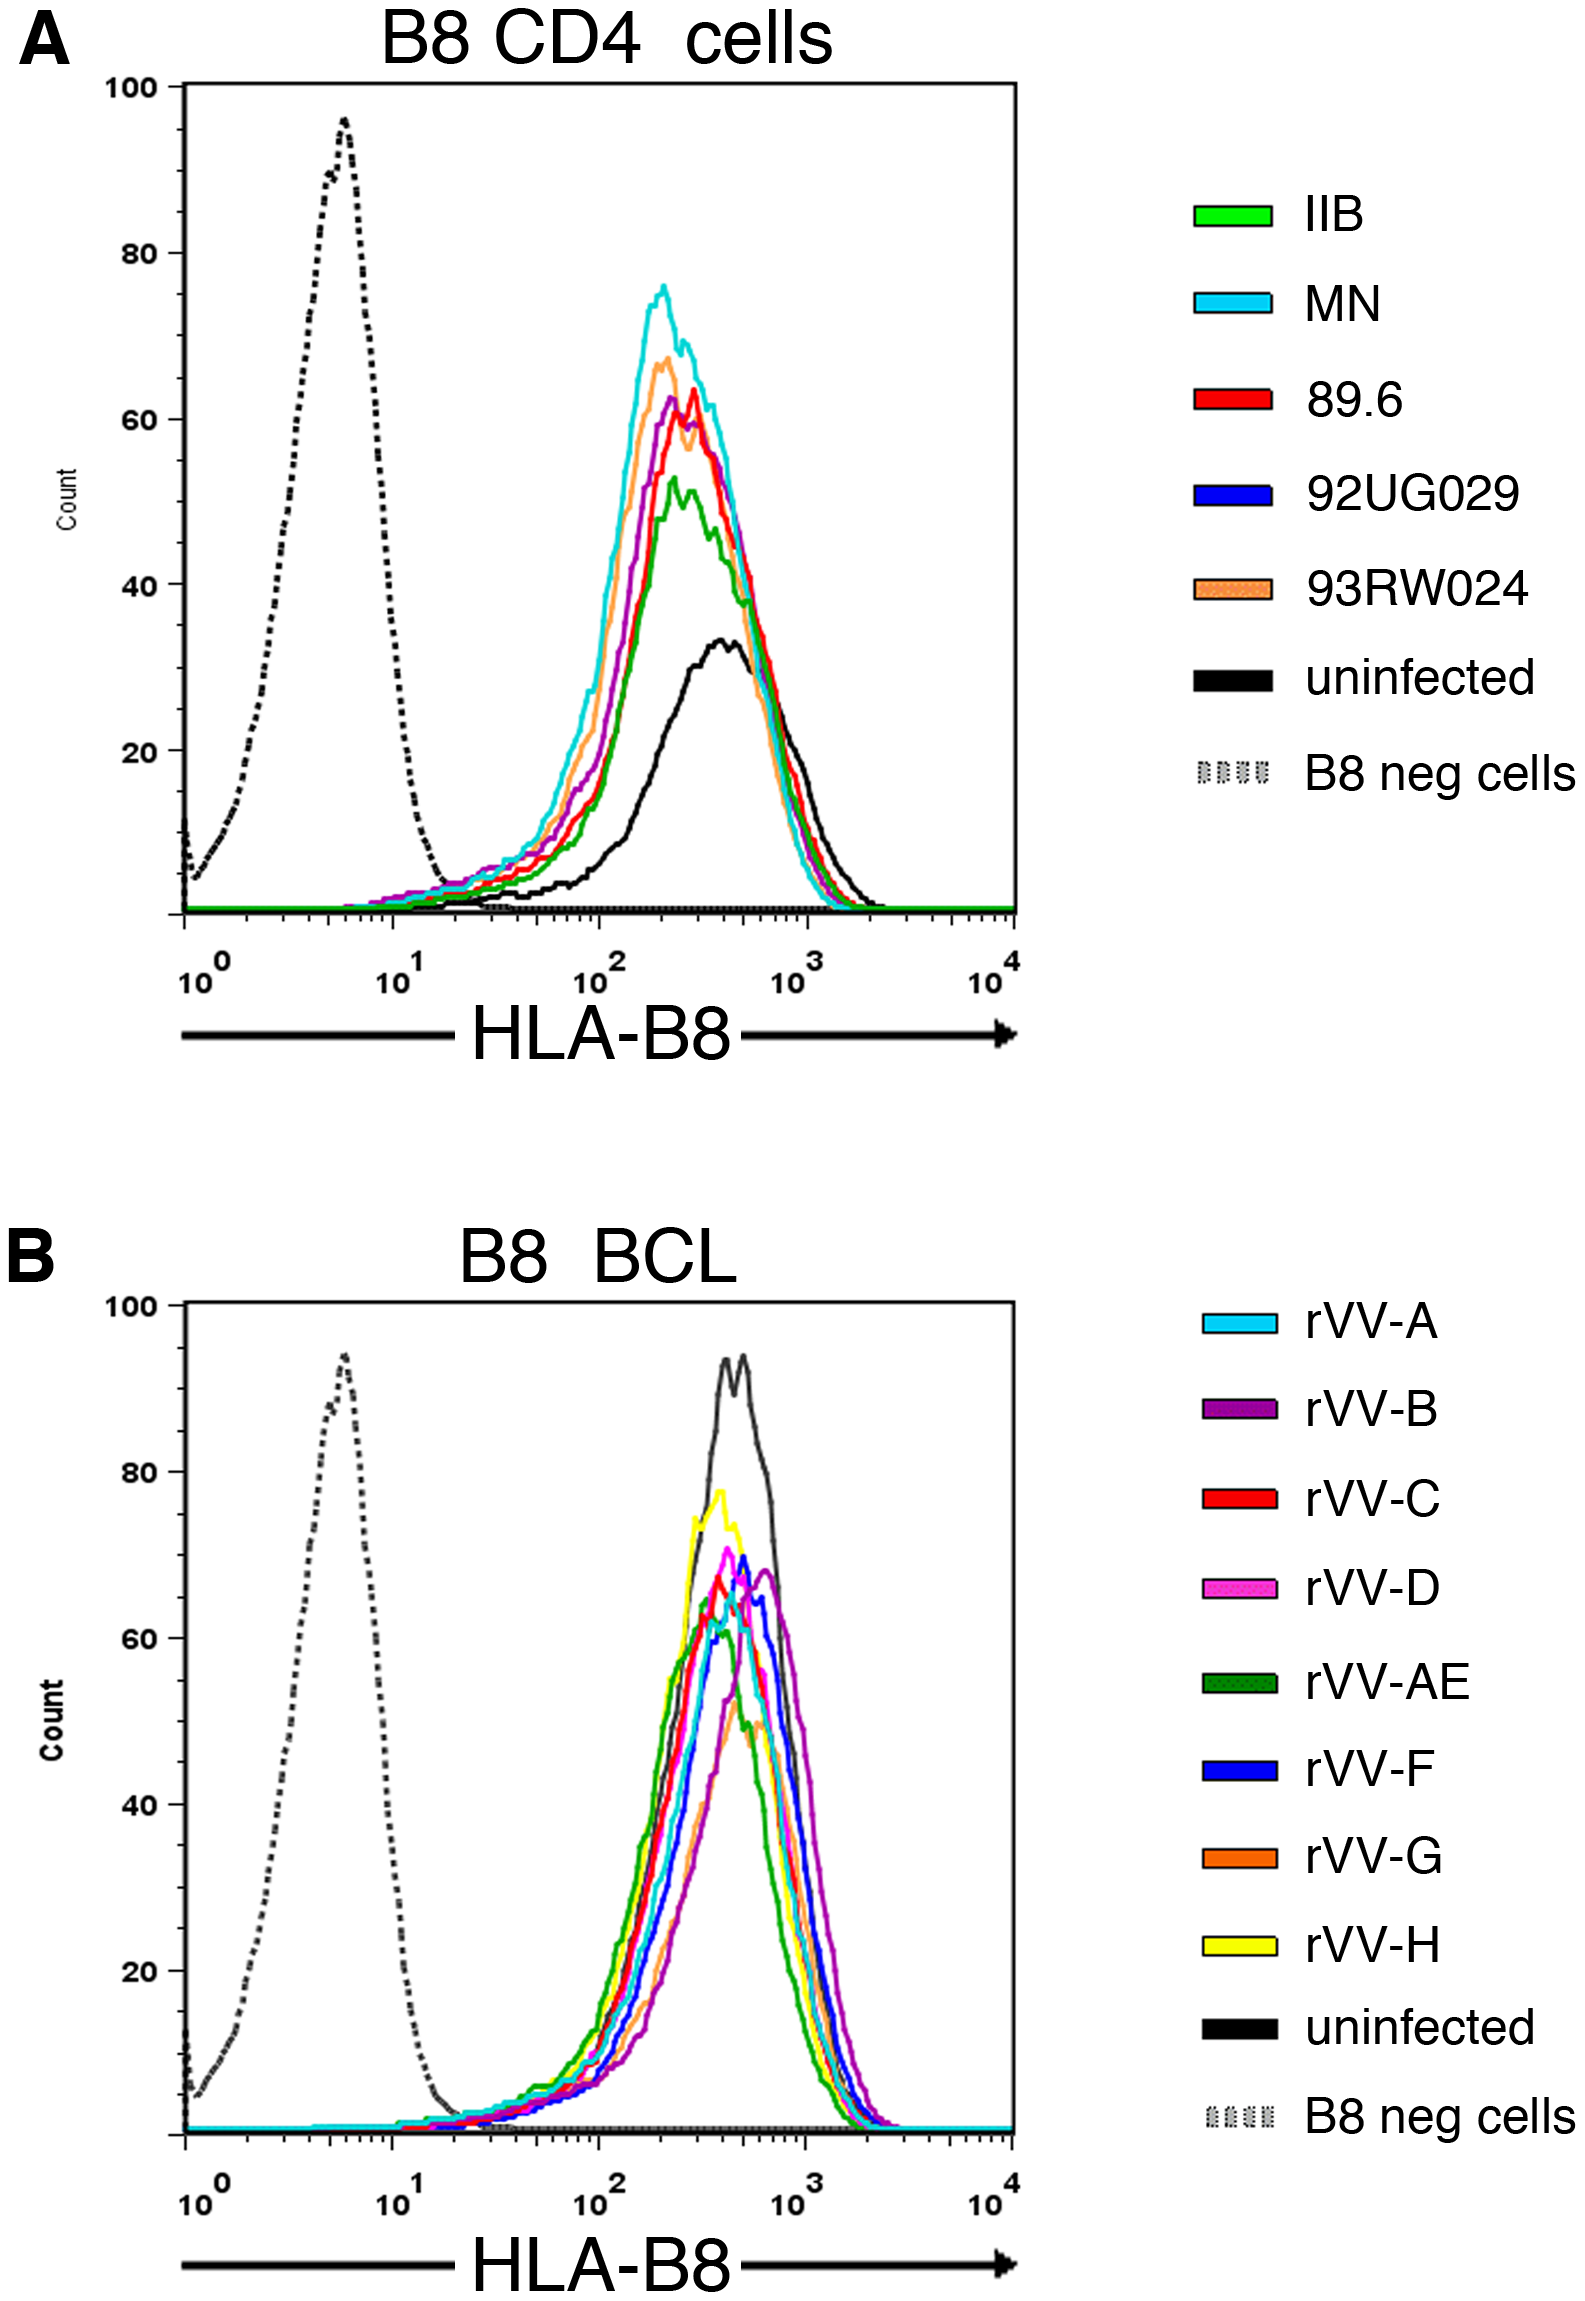 No marked difference in HLA-B8 surface expression between target cells infected by individual HIV isolates or rVV-Nef constructs.